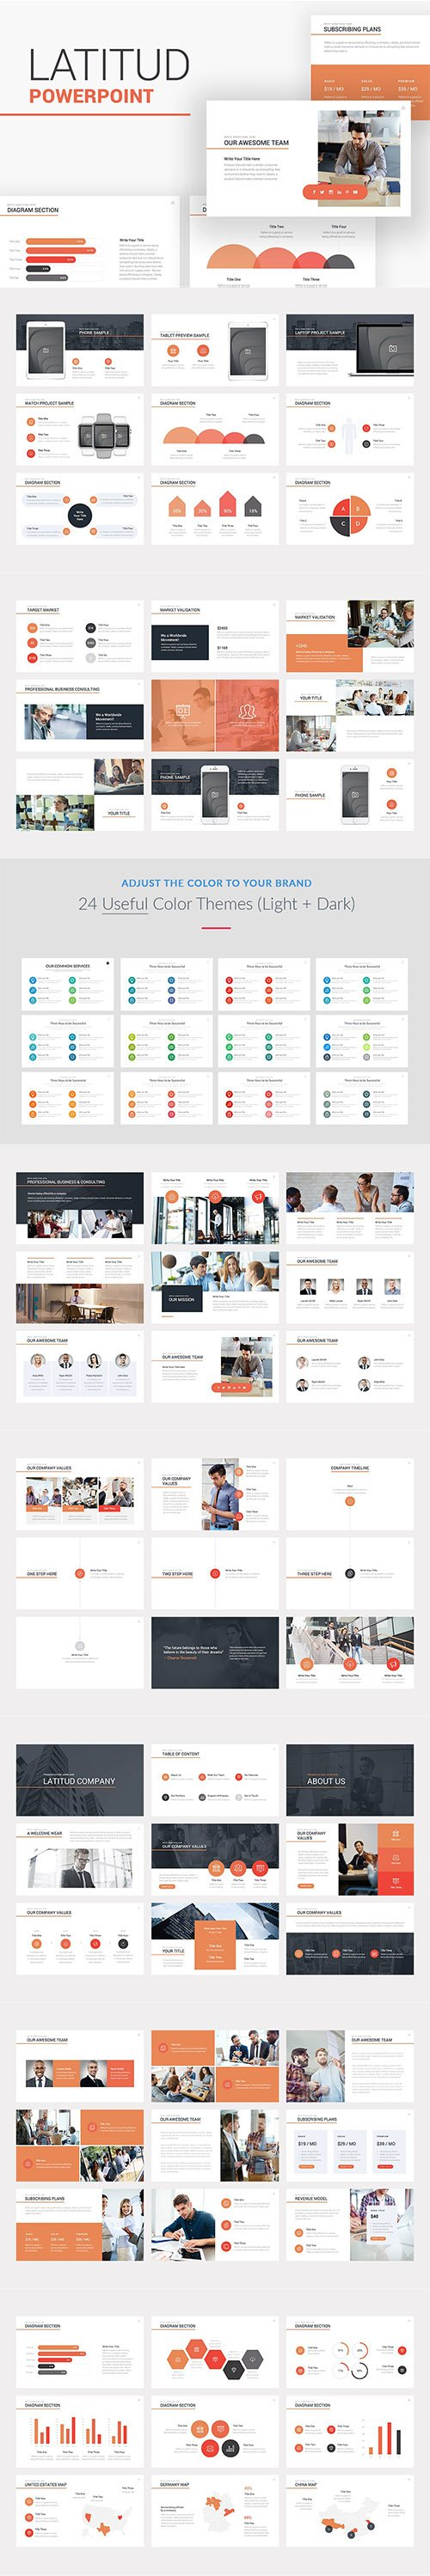 Latitud Business Pitch Deck Powerpoint, Keynote and Google Slides Template